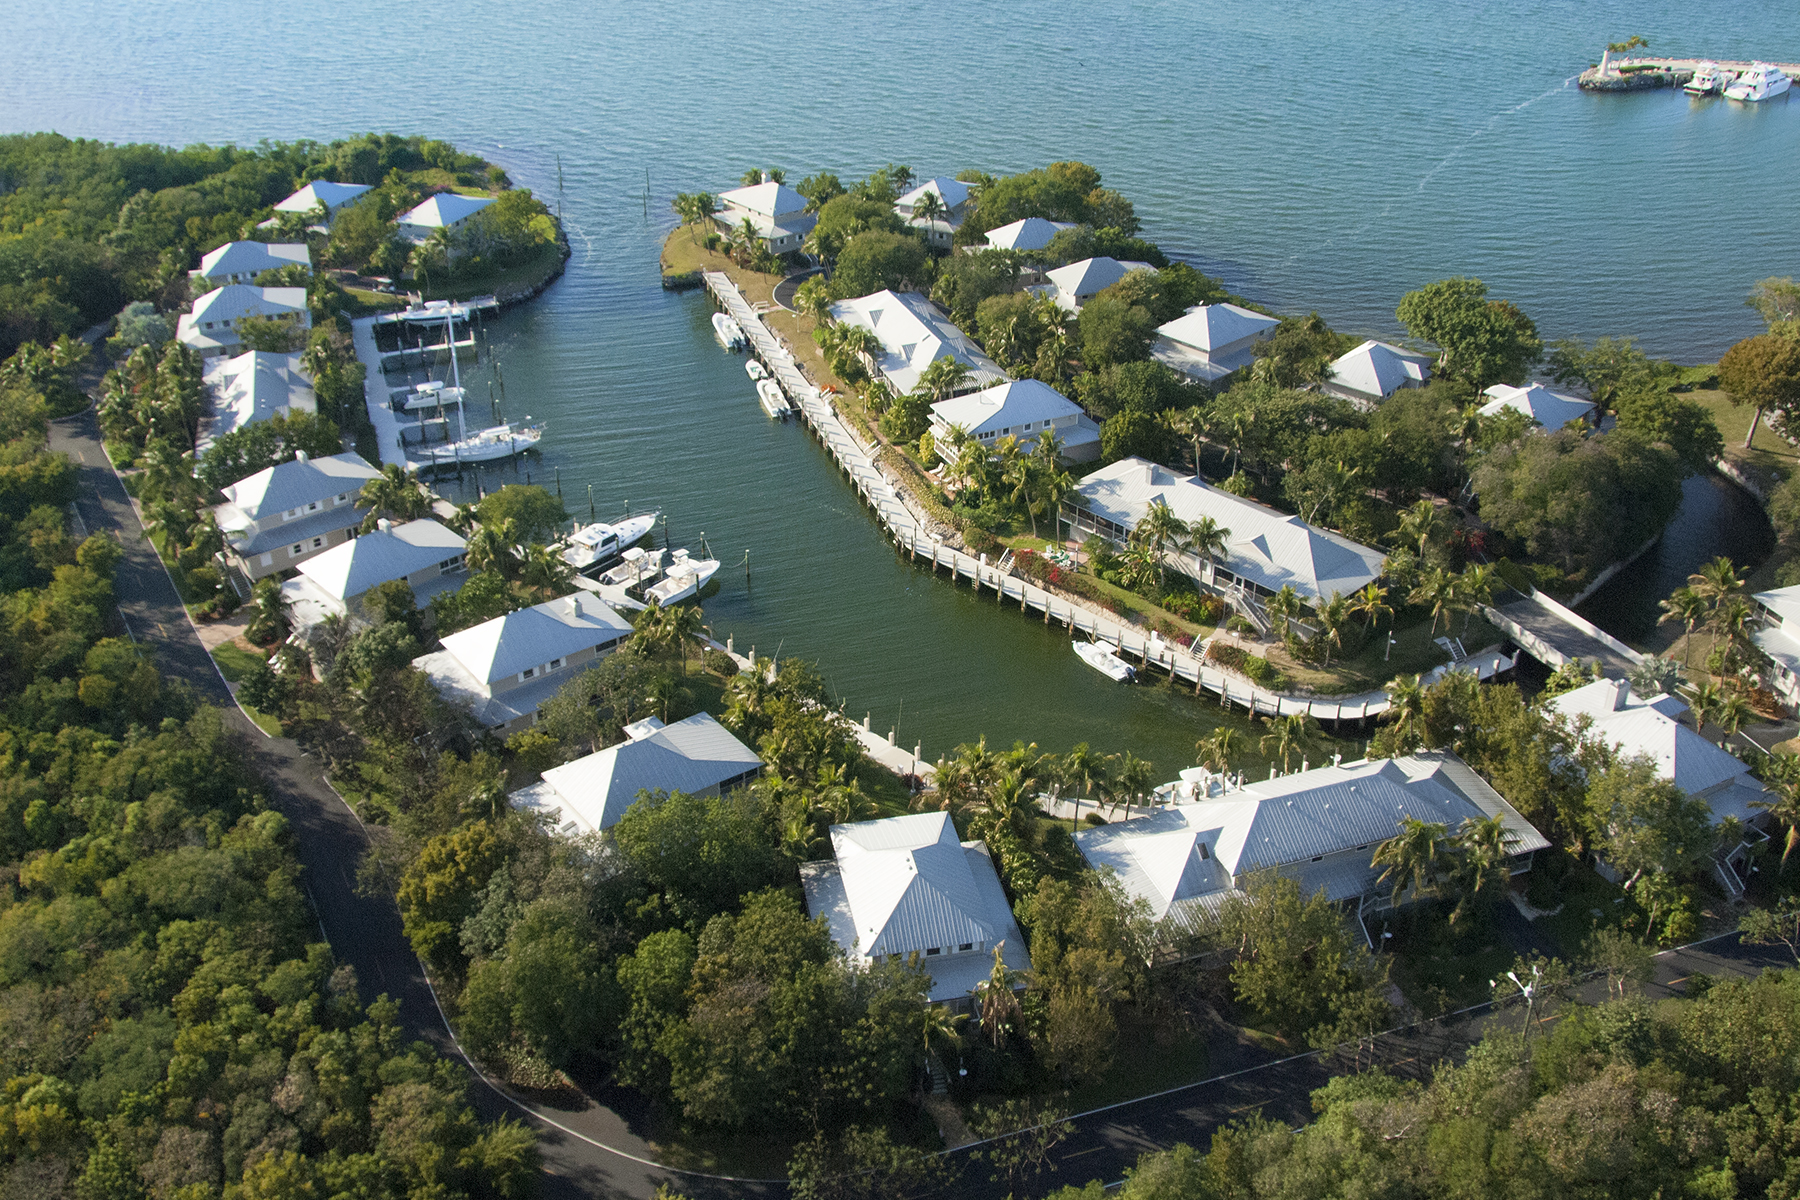 Maison unifamiliale pour l Vente à Waterfront Cottage - Key Largo Anglers Club 13 South Marina Drive Key Largo, Florida, 33037 États-Unis